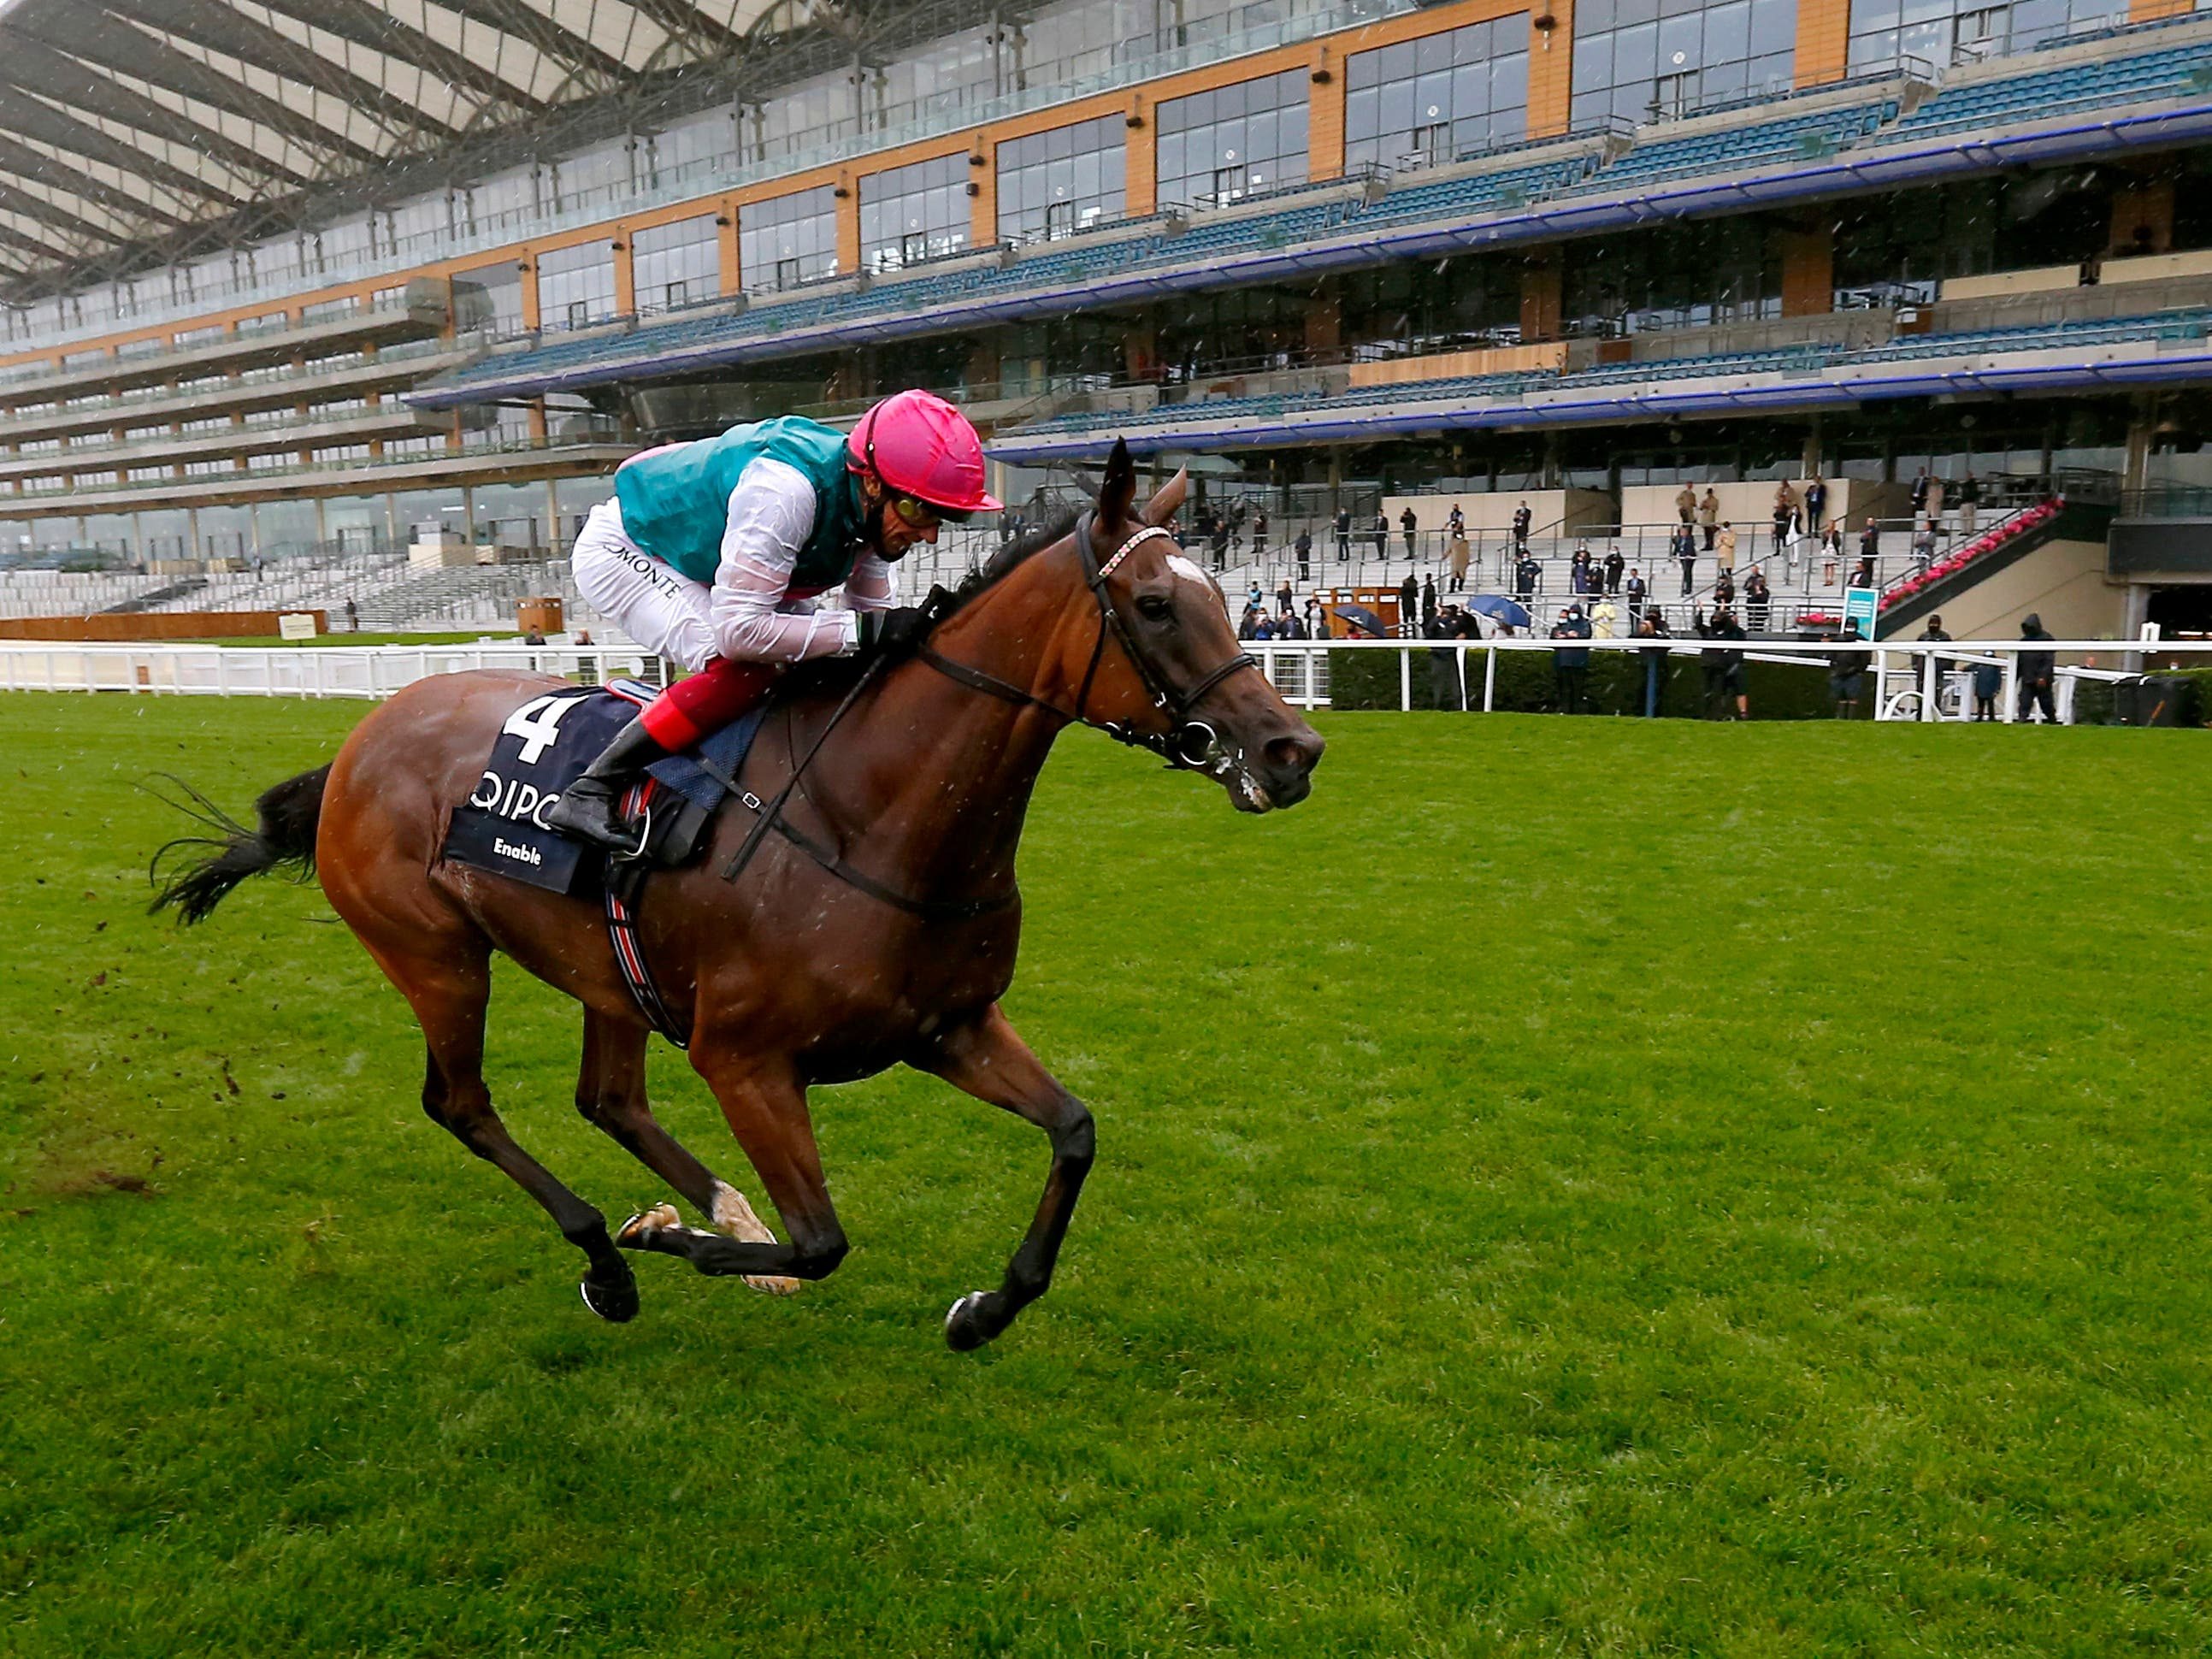 Enable and Frankie Dettori are due to bid for their third Prix de l'Arc de Triomphe together on Sunday (Dan Abraham/PA)